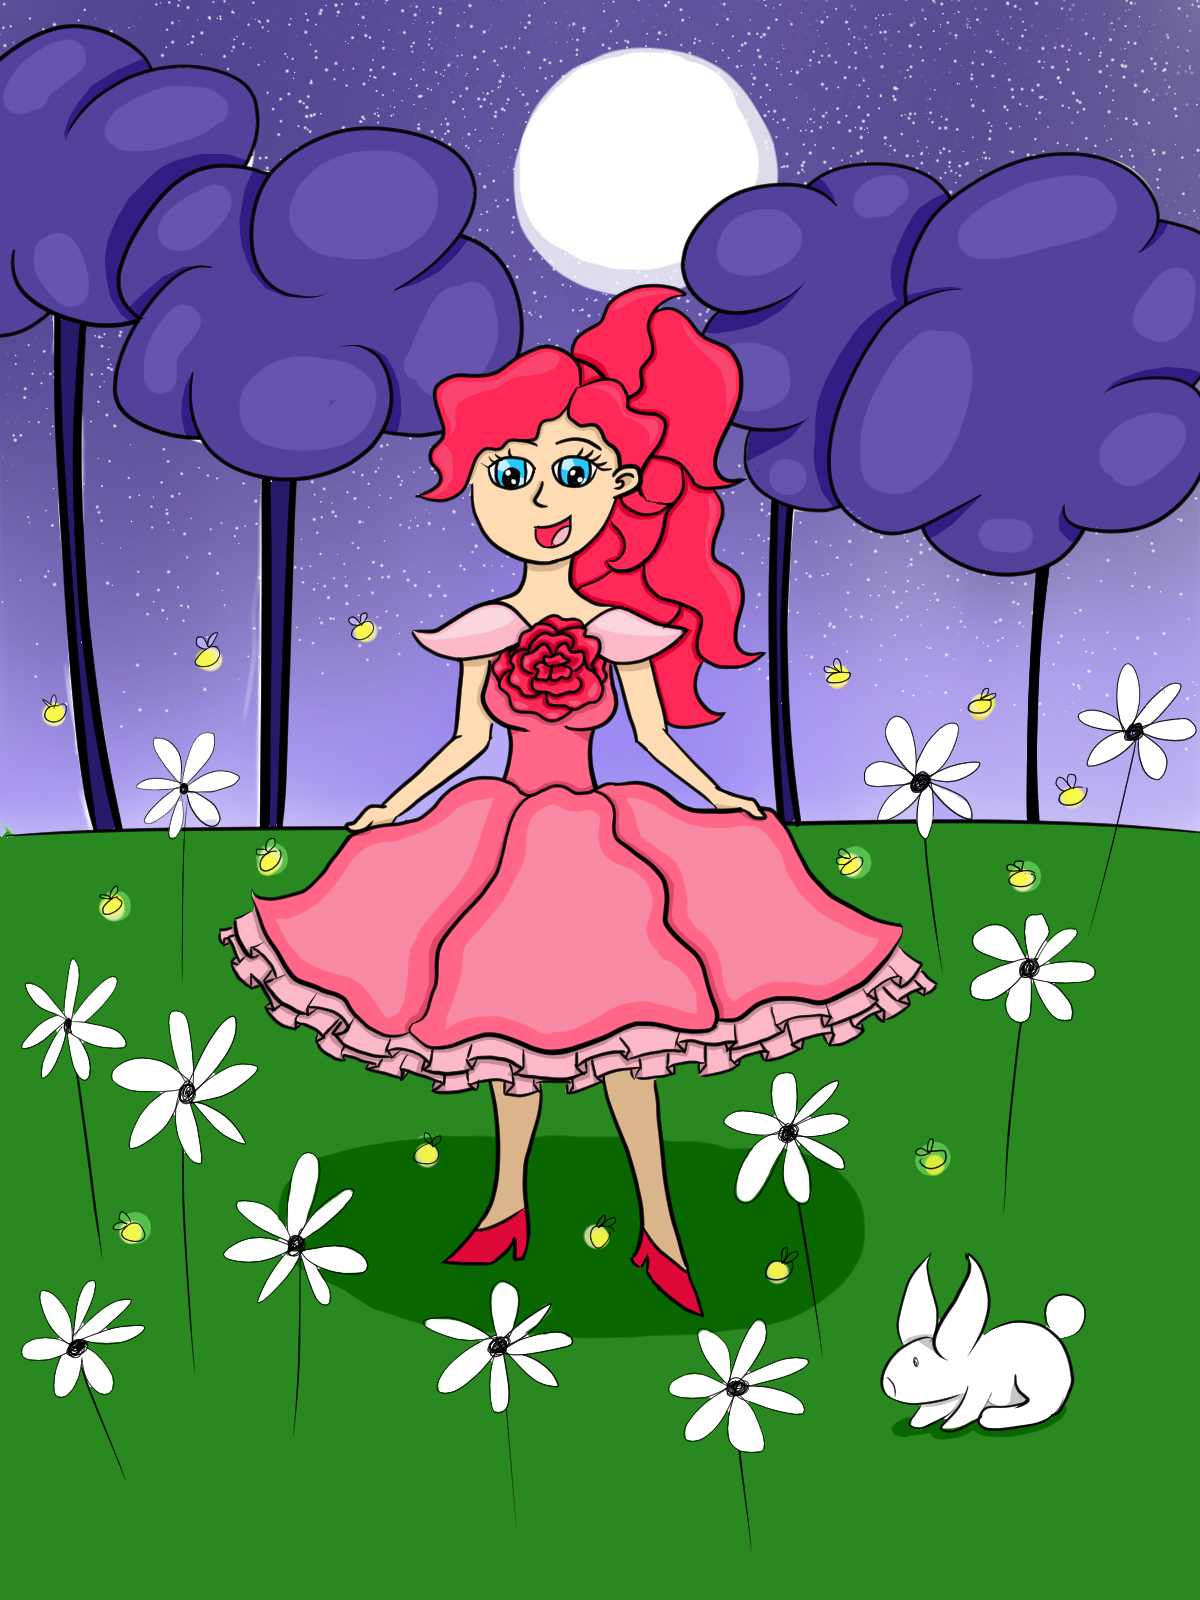 Rose dress in the grassfield